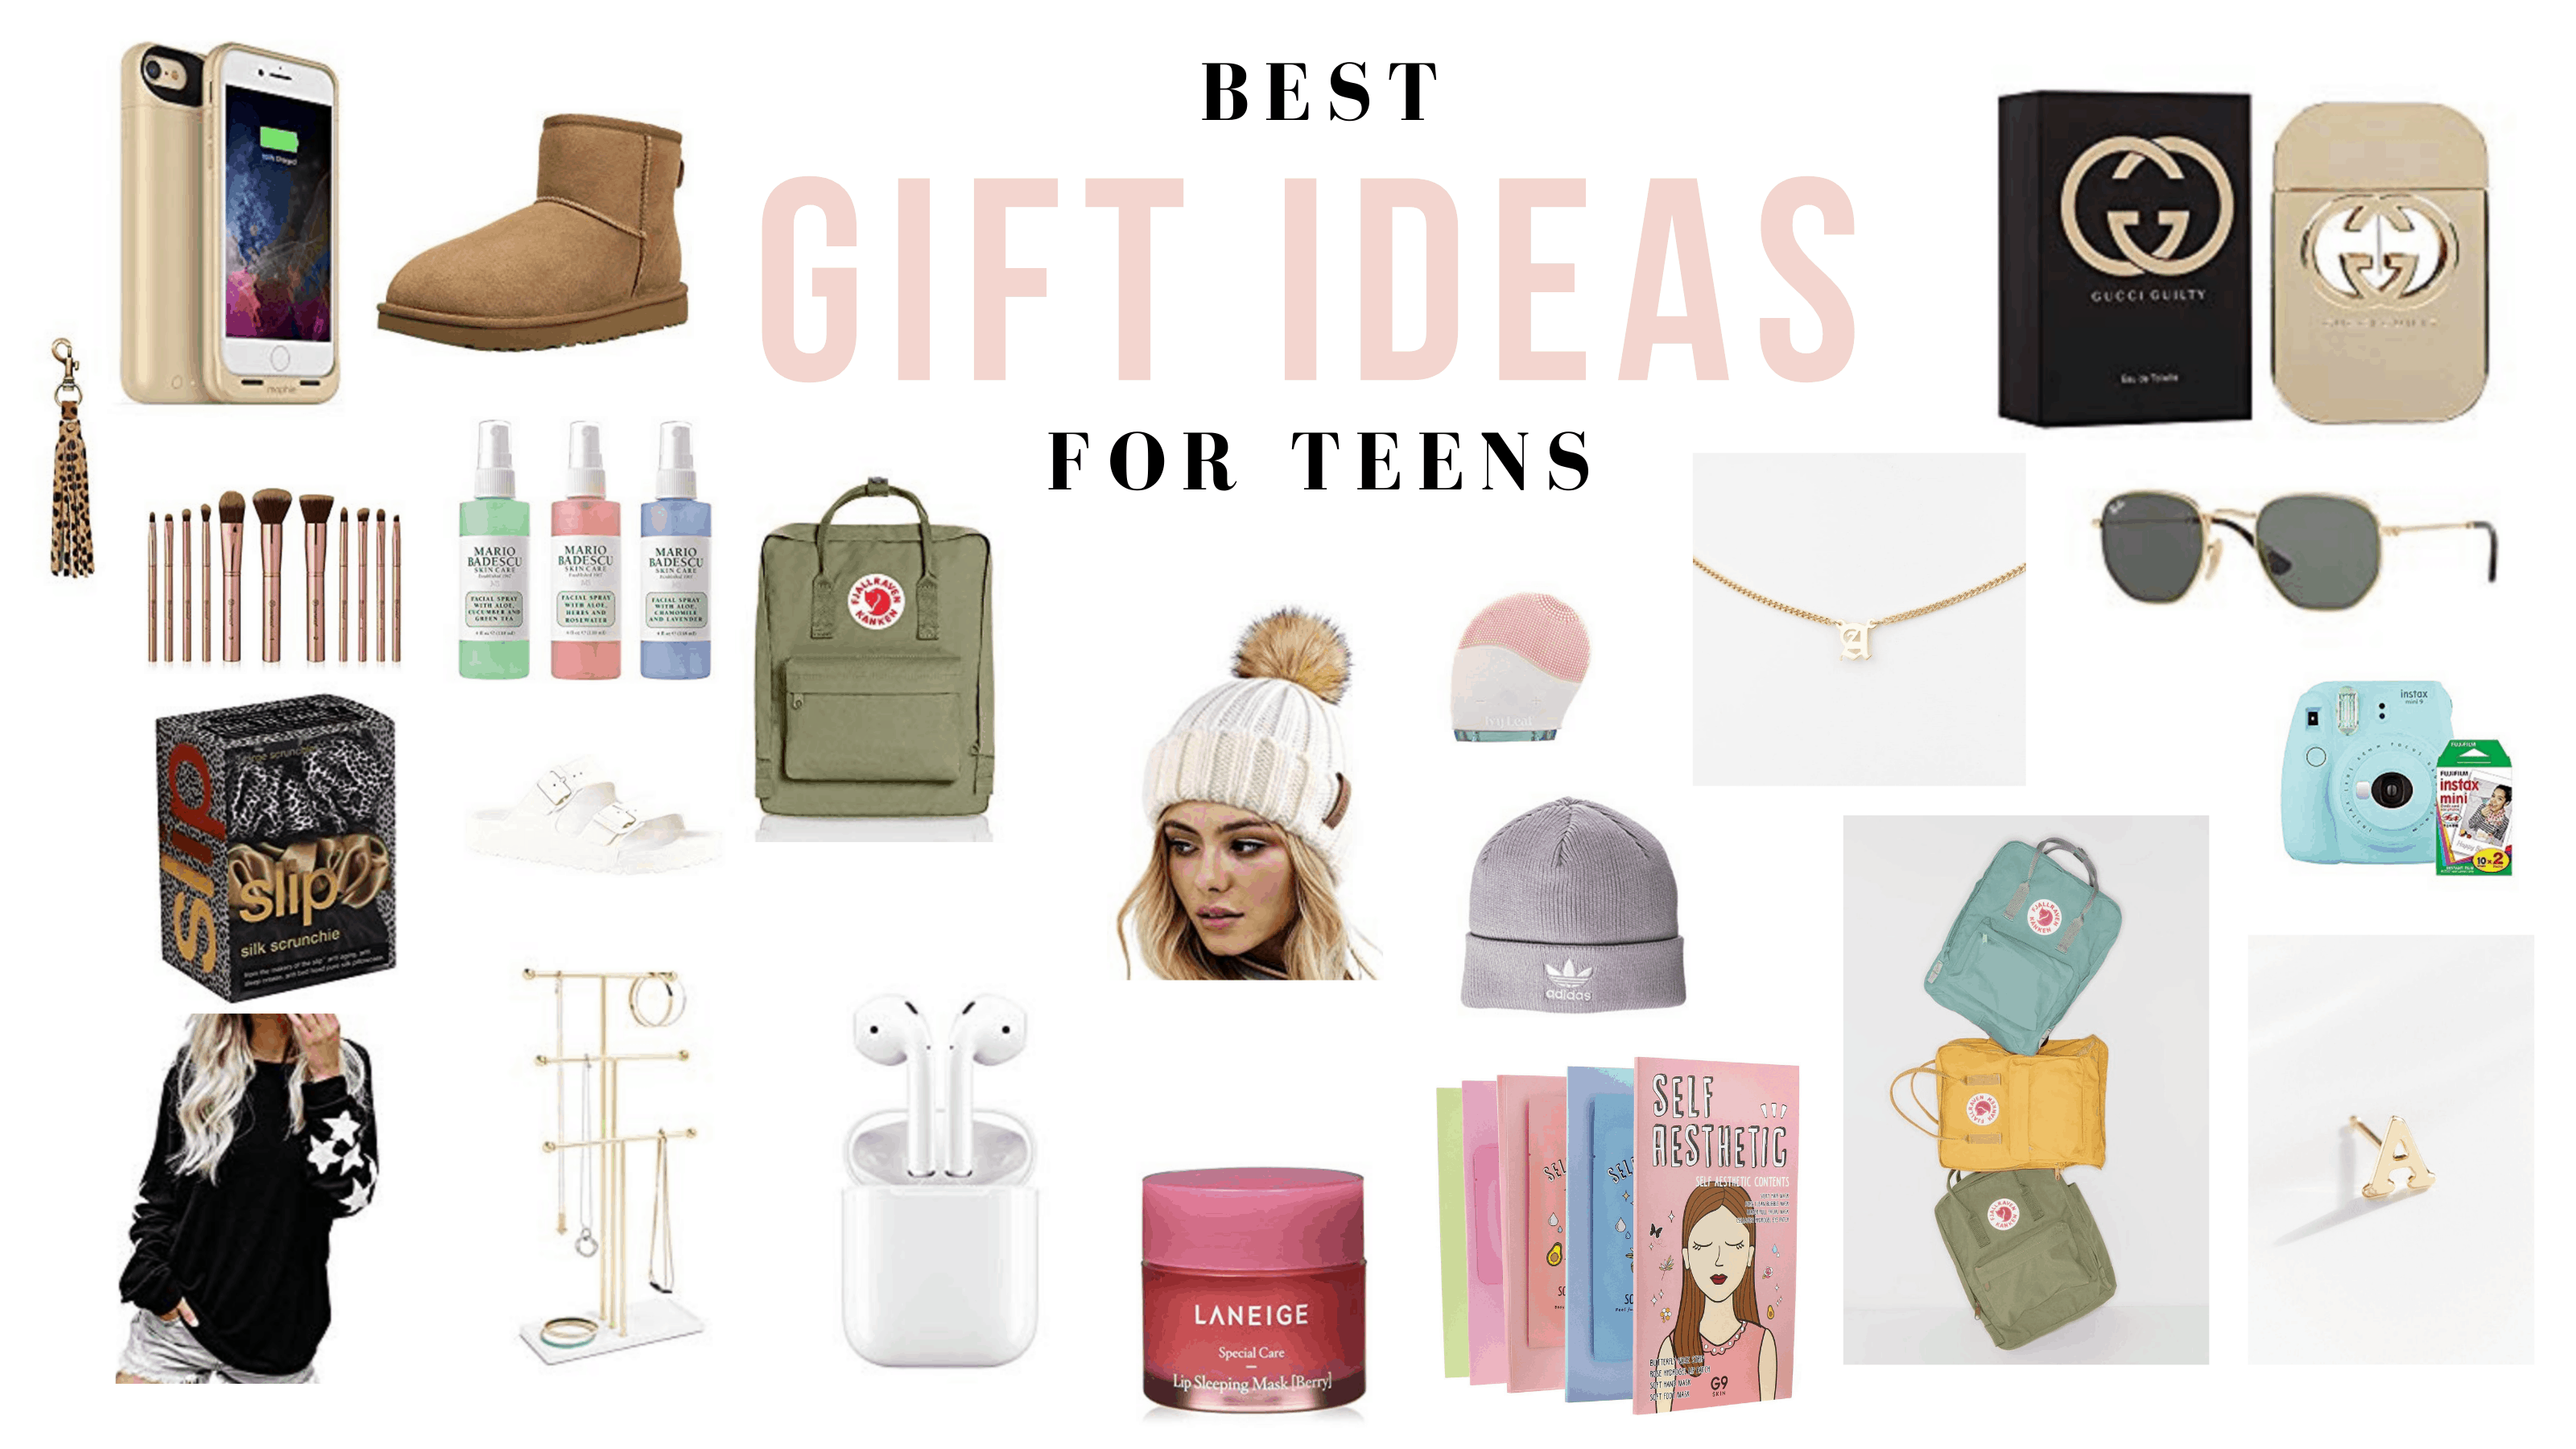 41 Best Christmas Gift Ideas For Teens They Will Die Over By Sophia Lee